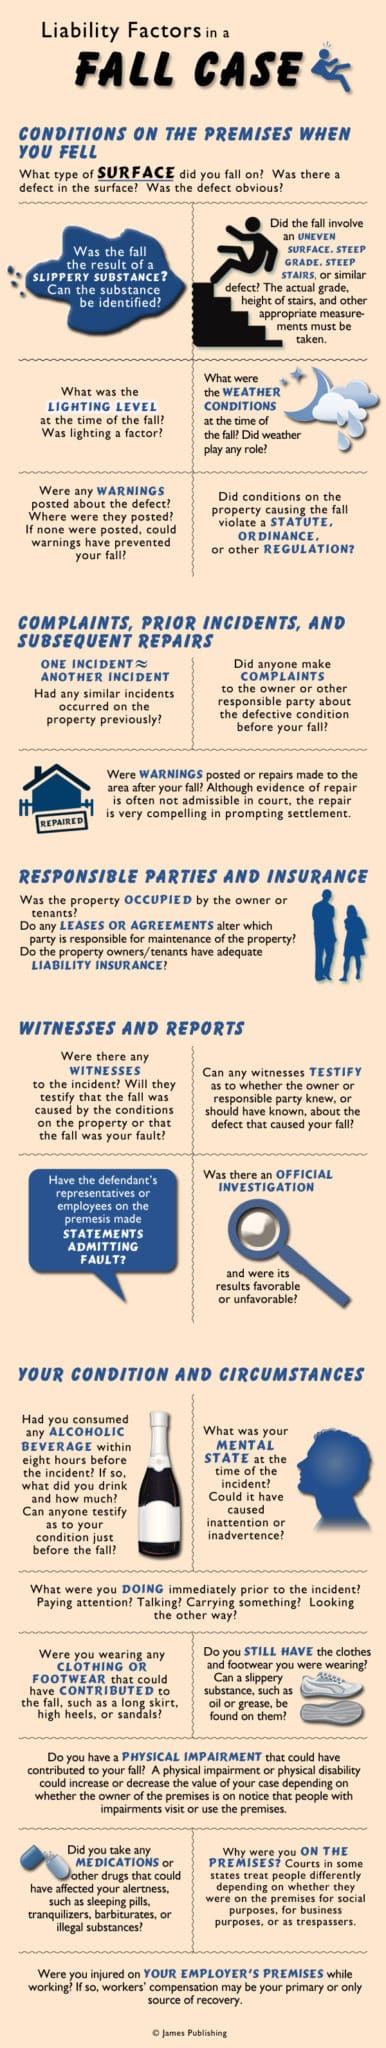 Jacksonville slip and fall attorney